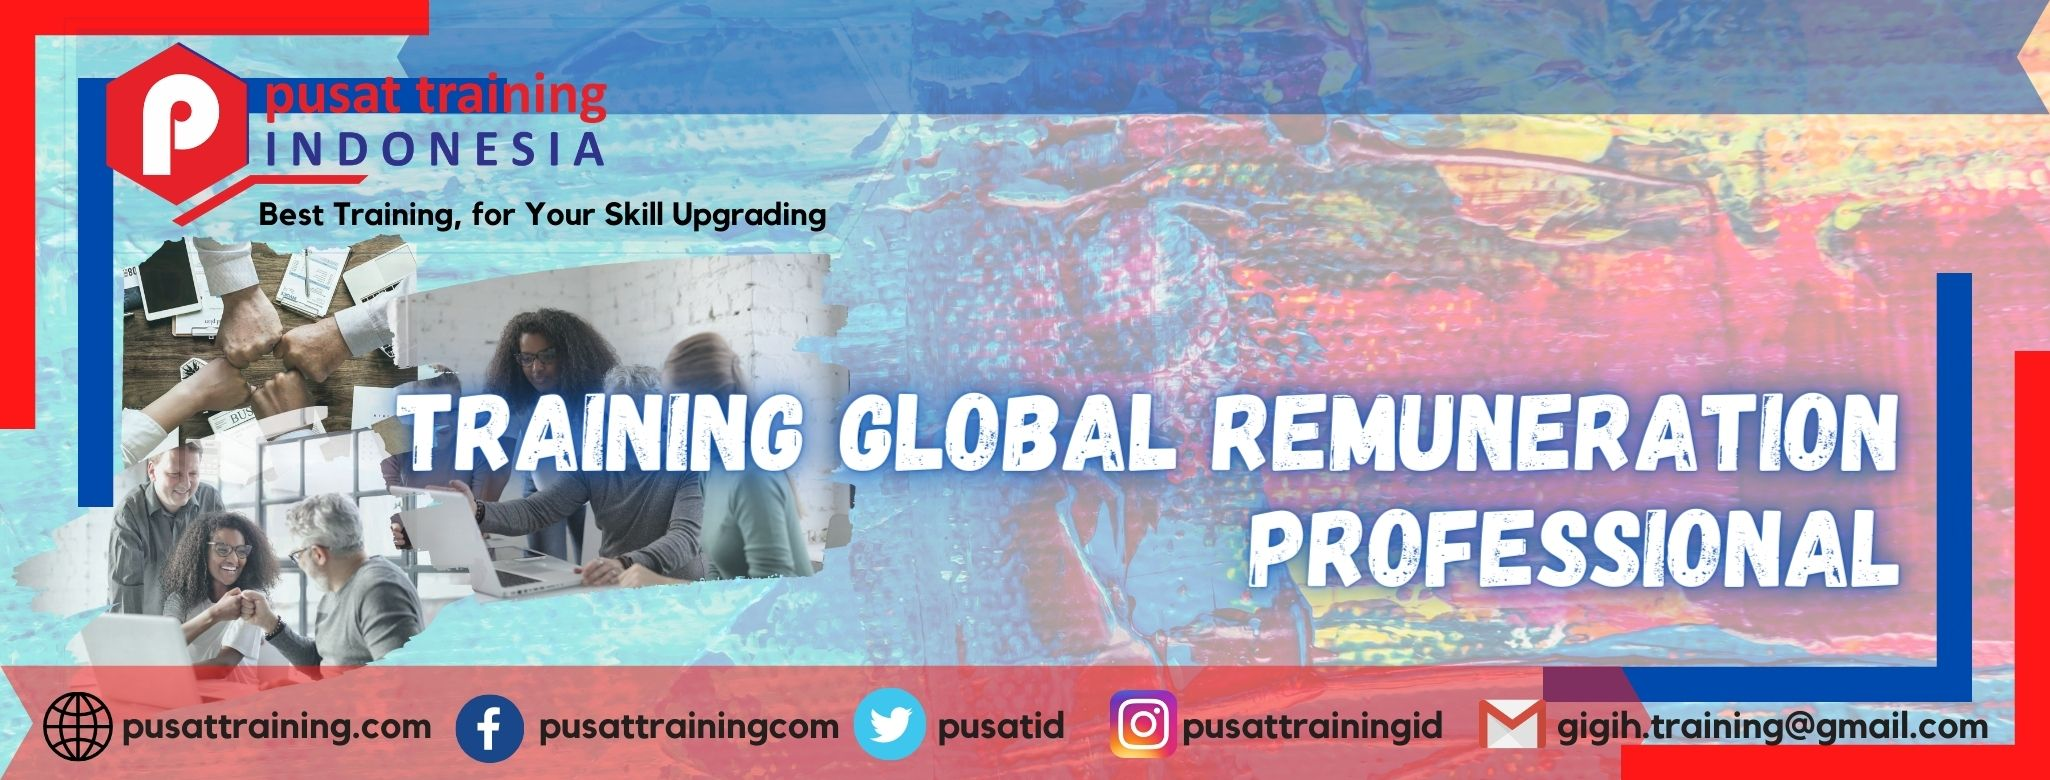 training-global-remuneration-professional